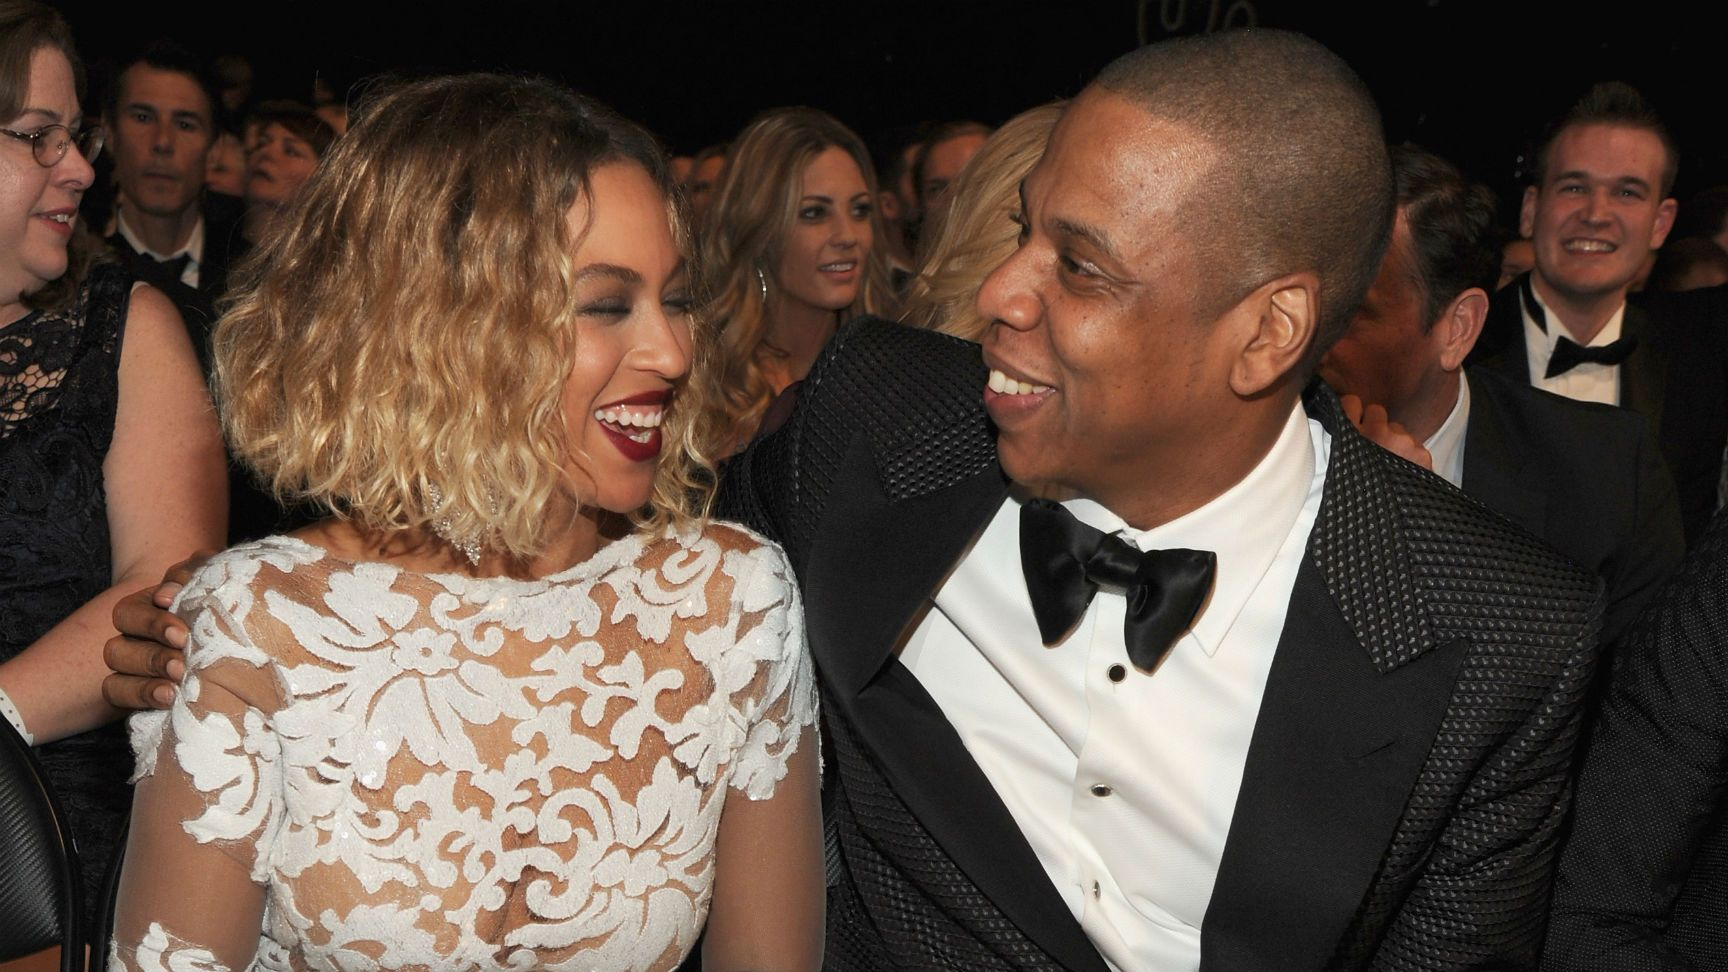 15 Things You Didn't Know About Jay Z & Beyonce's Relationship